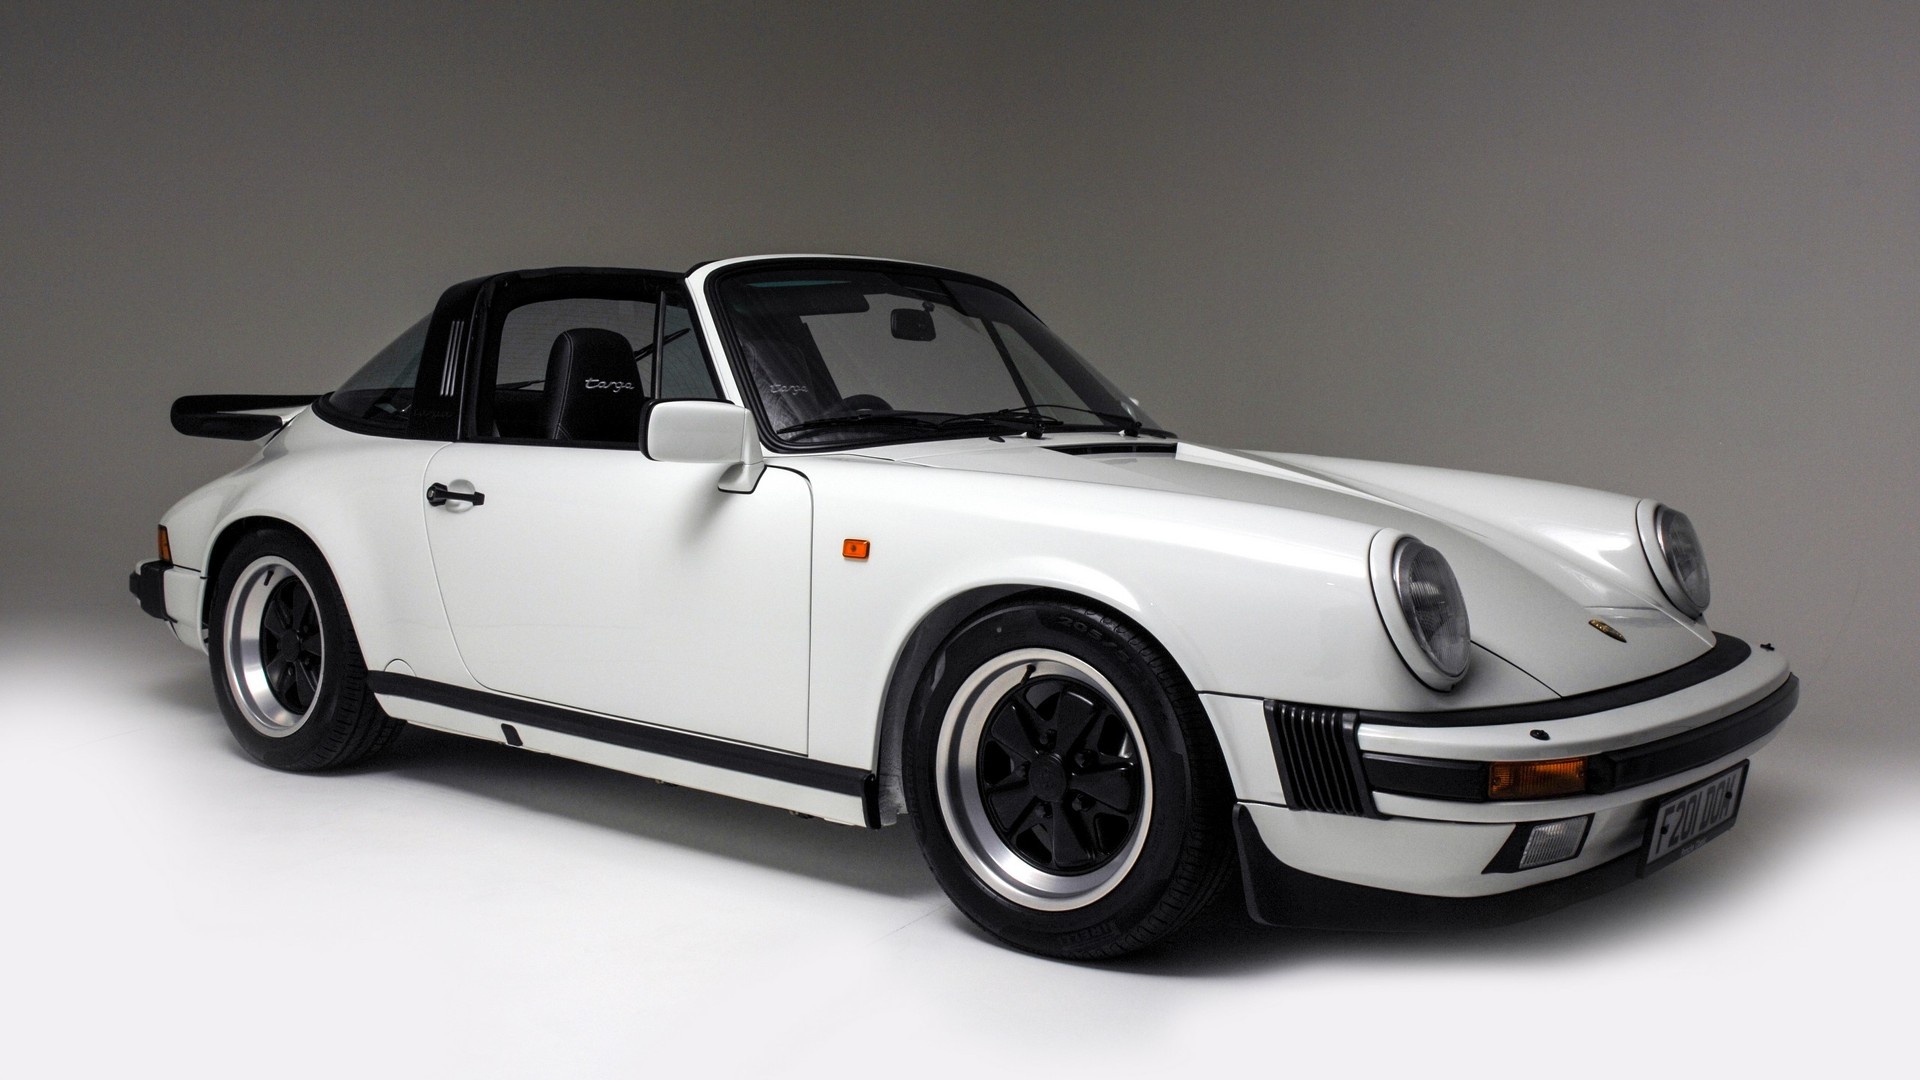 1988 Porsche 911 >> 911 Carrera Sport Targa Fully Restored By Porsche Is Just Perfect